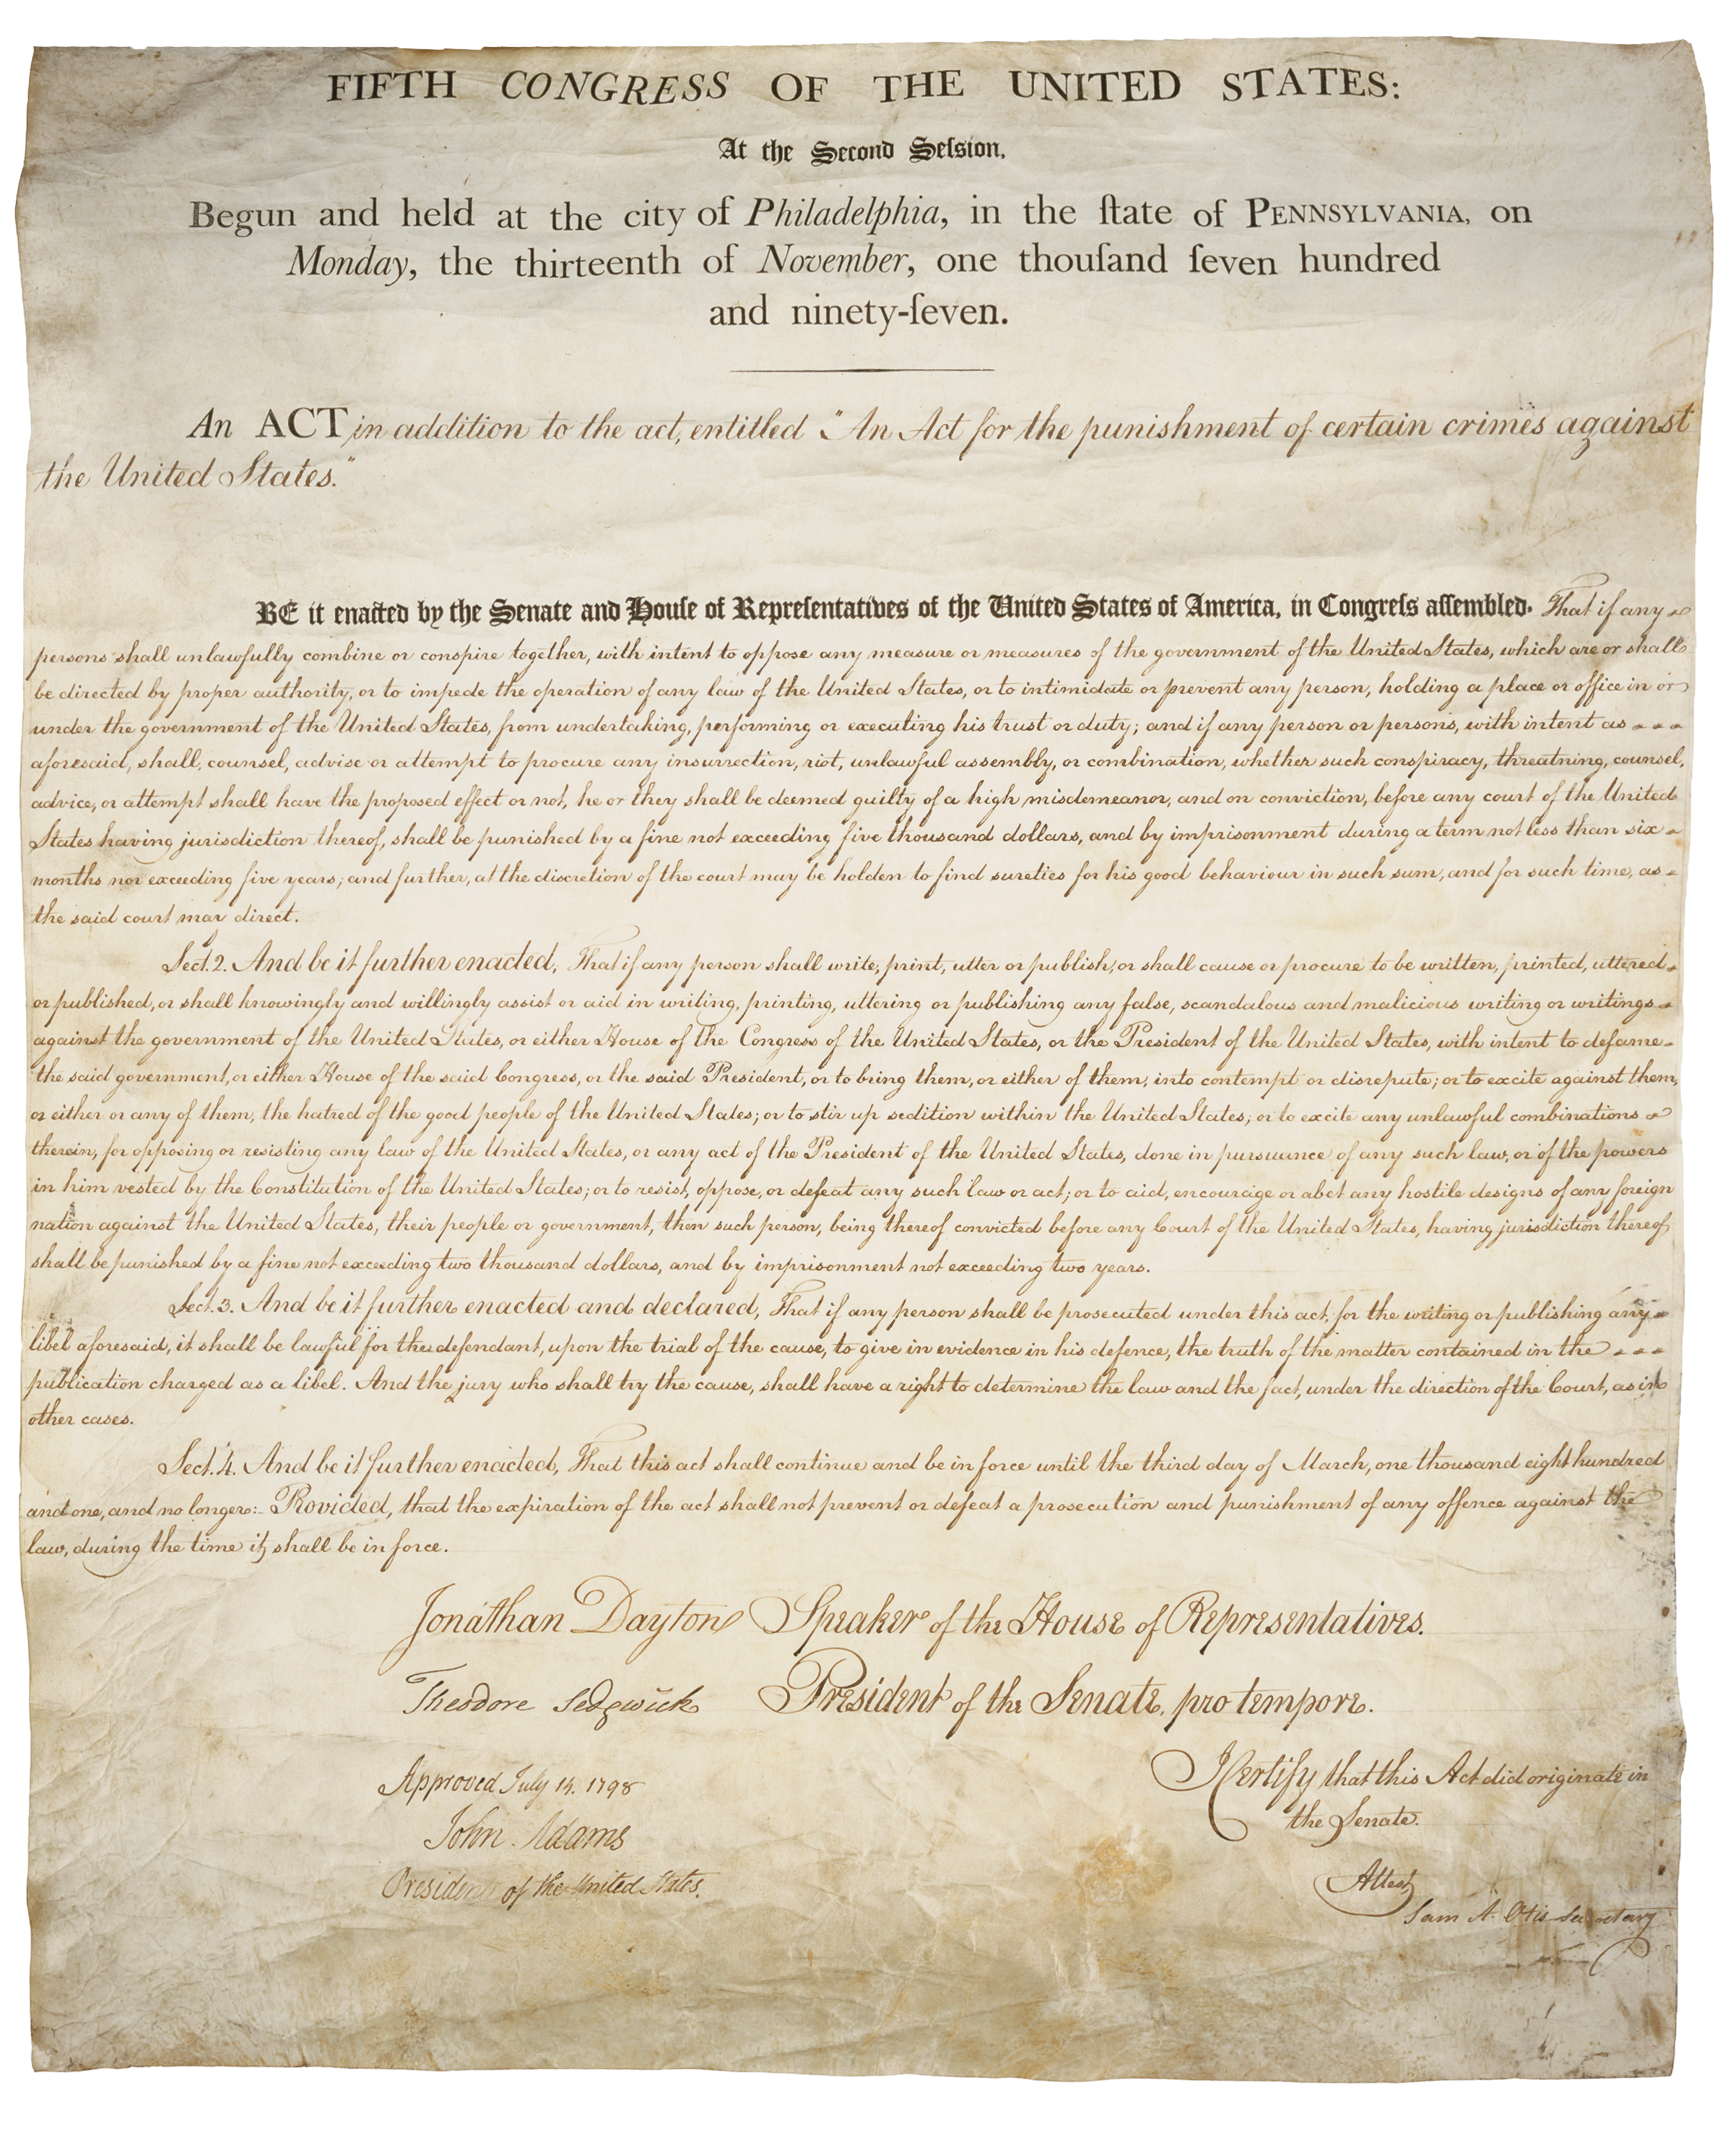 a history of the alien and sedition acts in the united states The french revolution had an impact on the politics and laws of the united states it was also a primary motivator behind the passage of the alien and sedition acts.